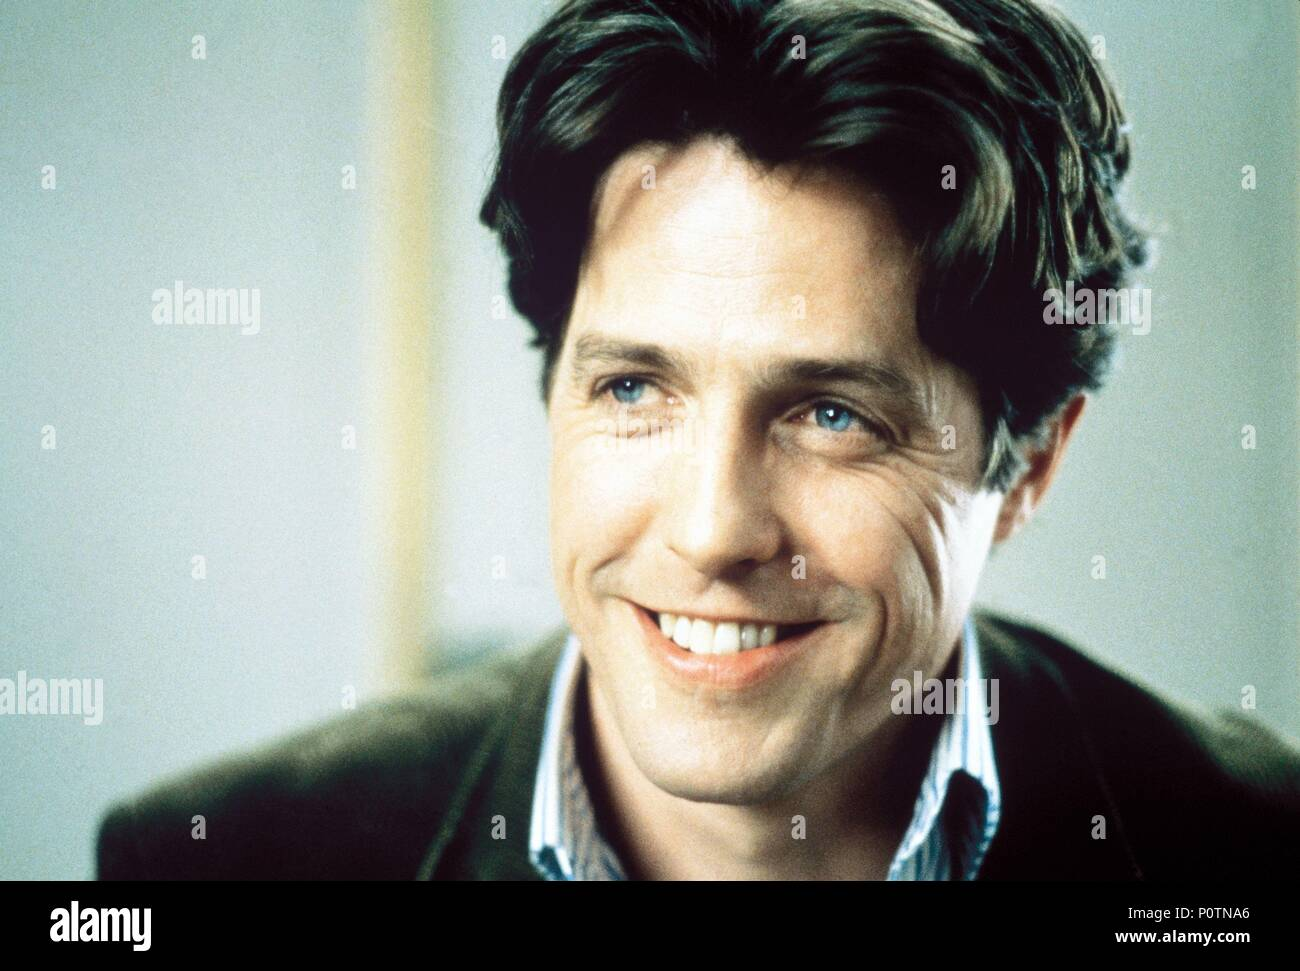 Original Film Title: NOTTING HILL.  English Title: NOTTING HILL.  Film Director: ROGER MICHELL.  Year: 1999.  Stars: HUGH GRANT. Credit: POLYGRAM / Album Stock Photo